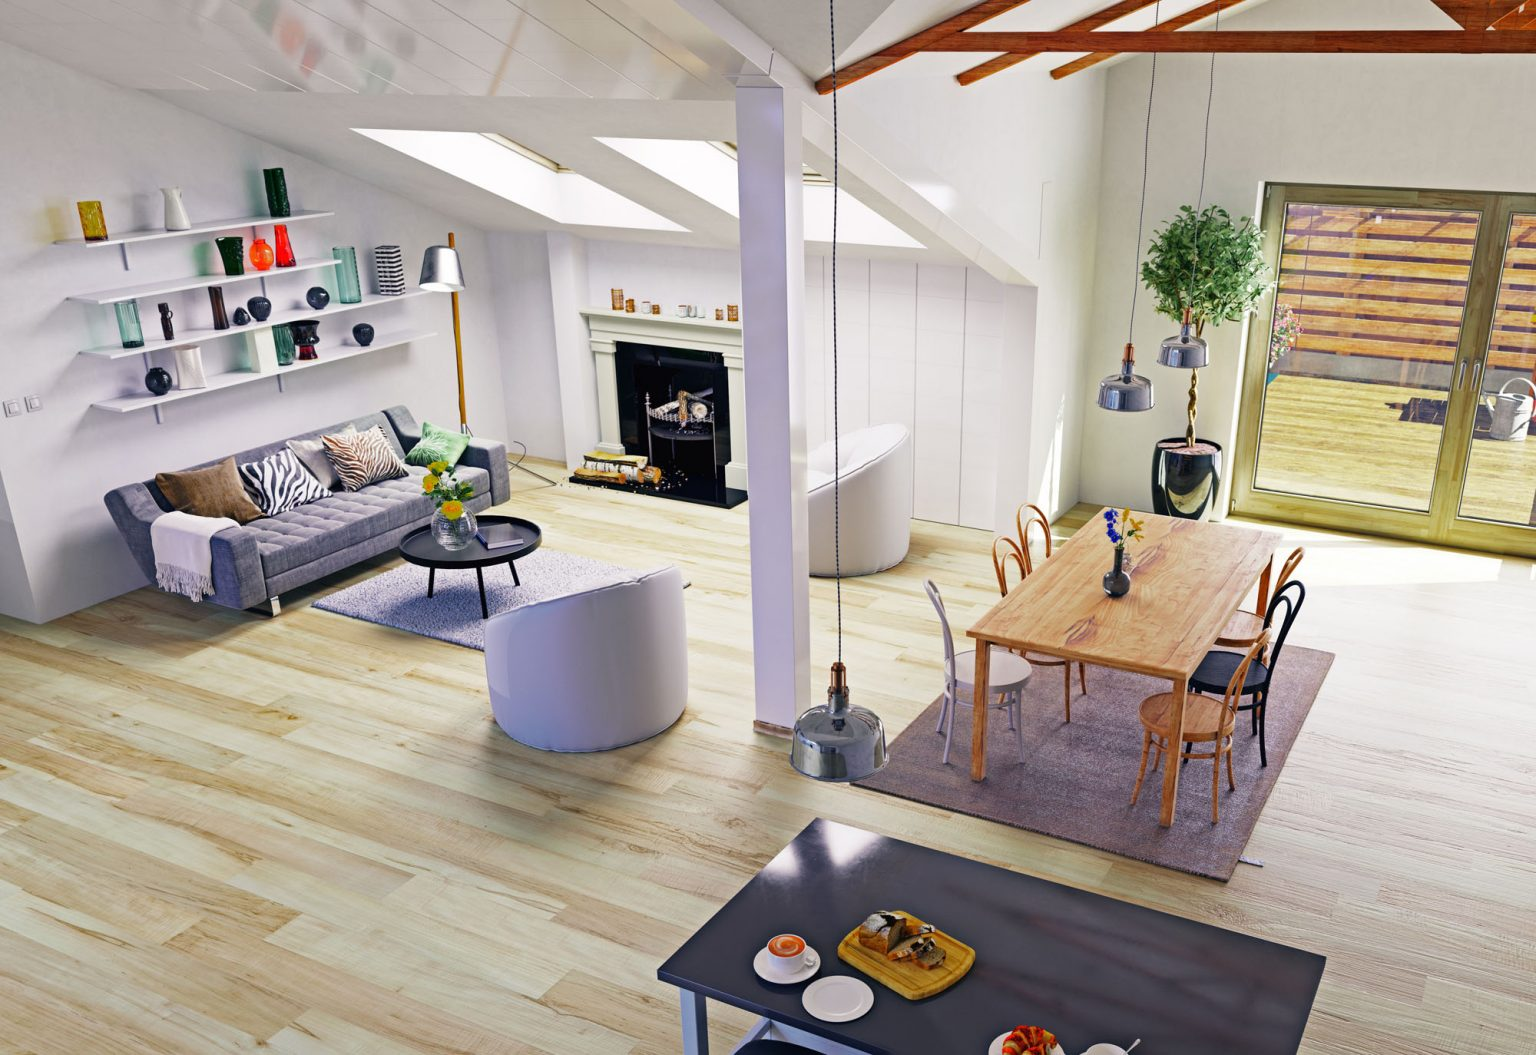 Attic floor design.3d illustration concept